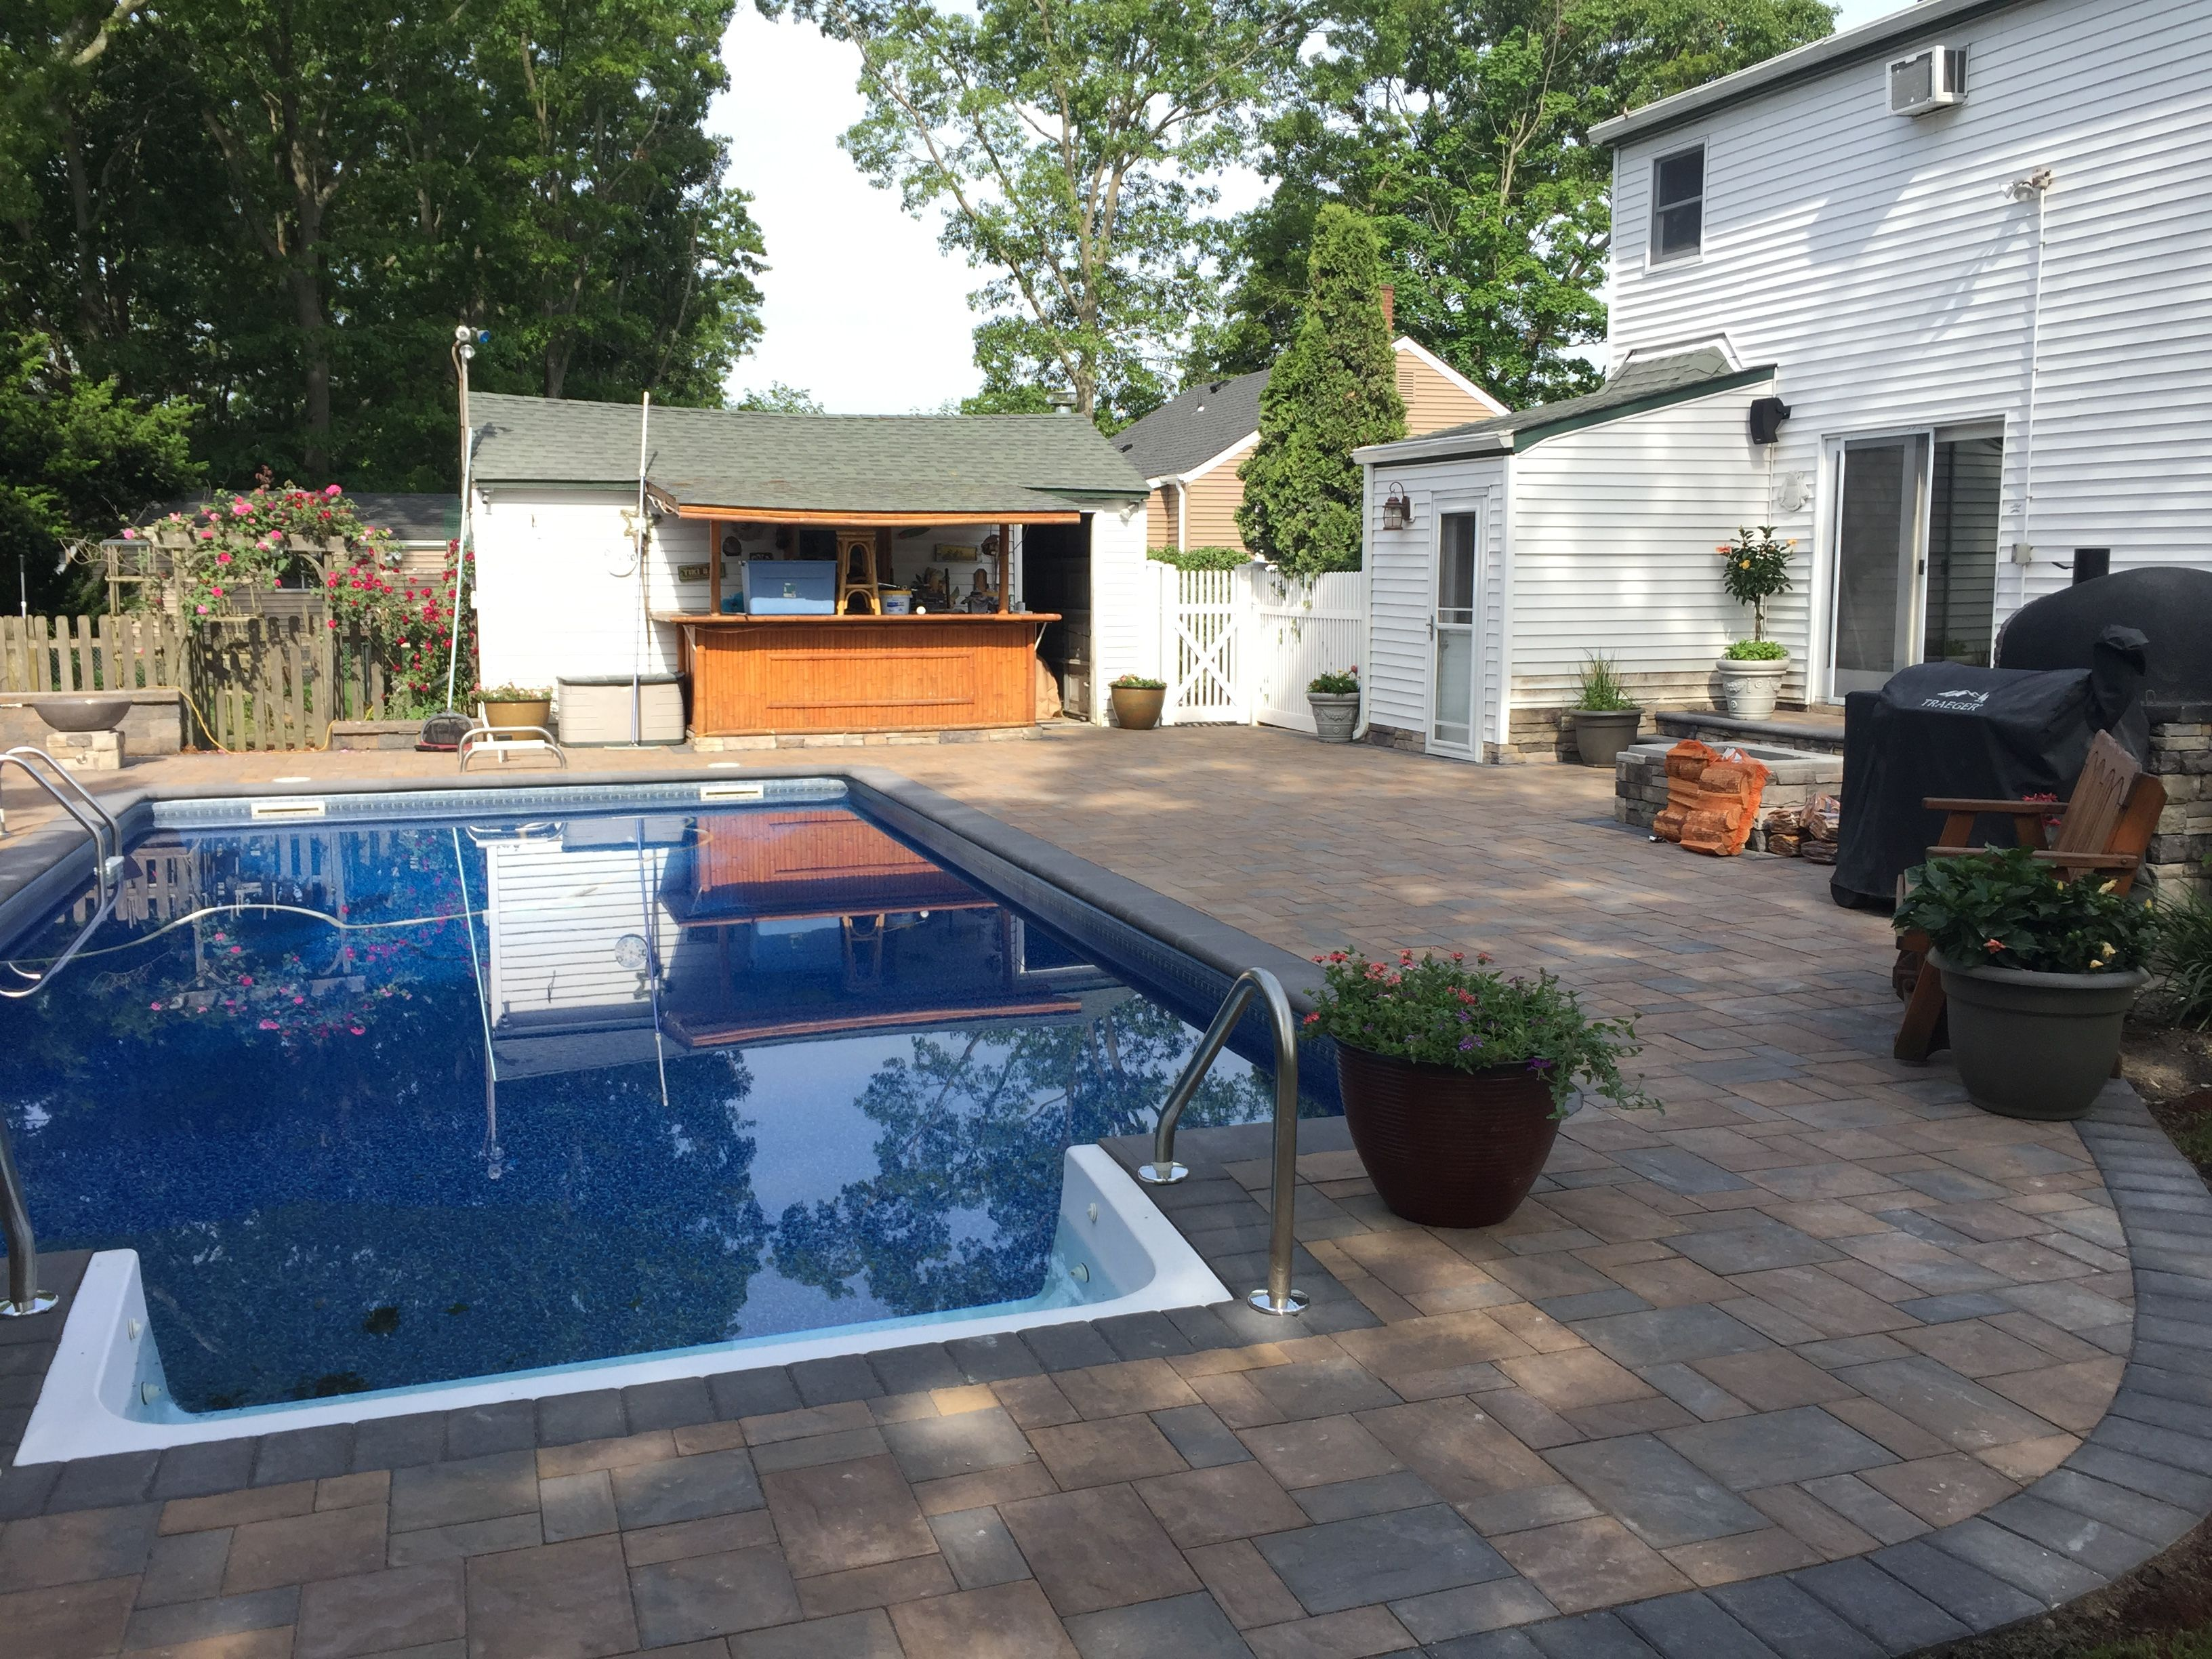 East Islip, Ny 11730  #Pool #Outdoorliving #Brickoven #Firepit #Firetable